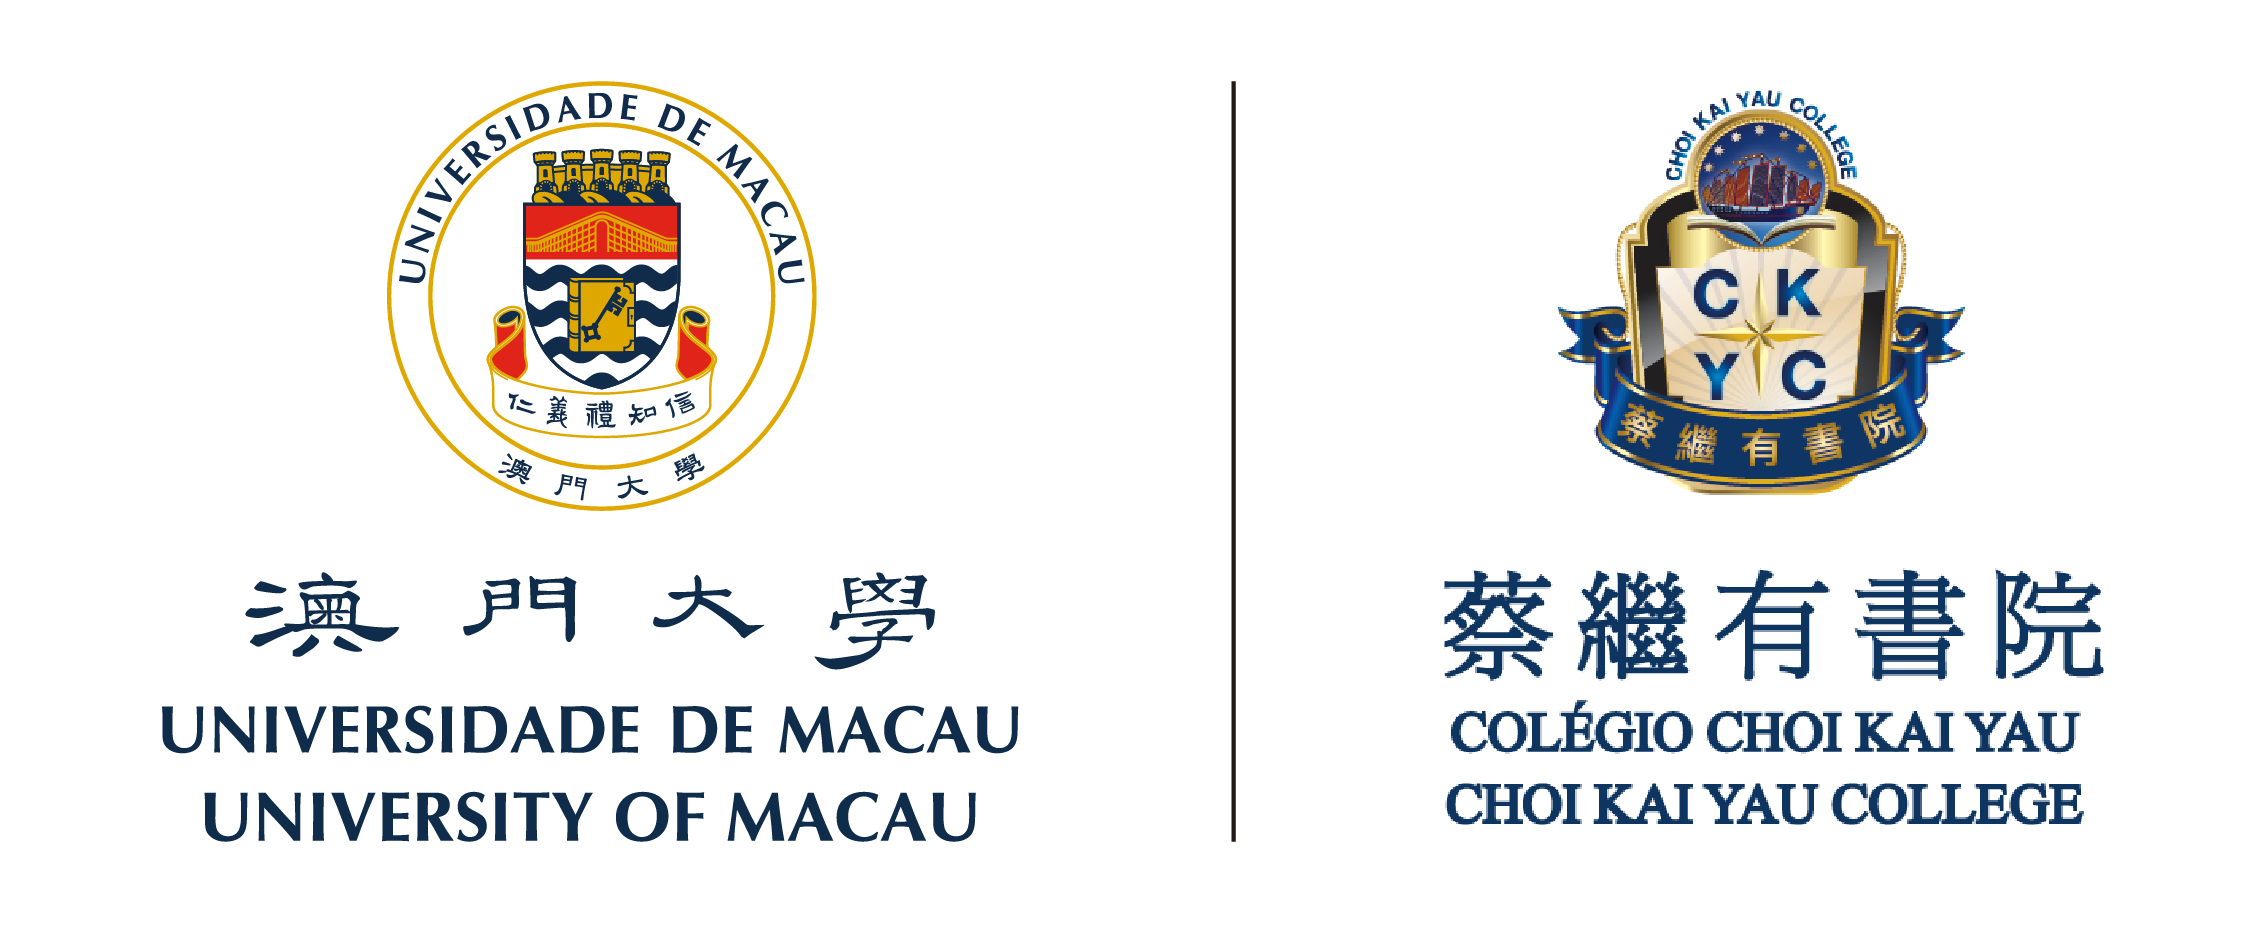 Choi Kai Yau College | University of Macau Logo